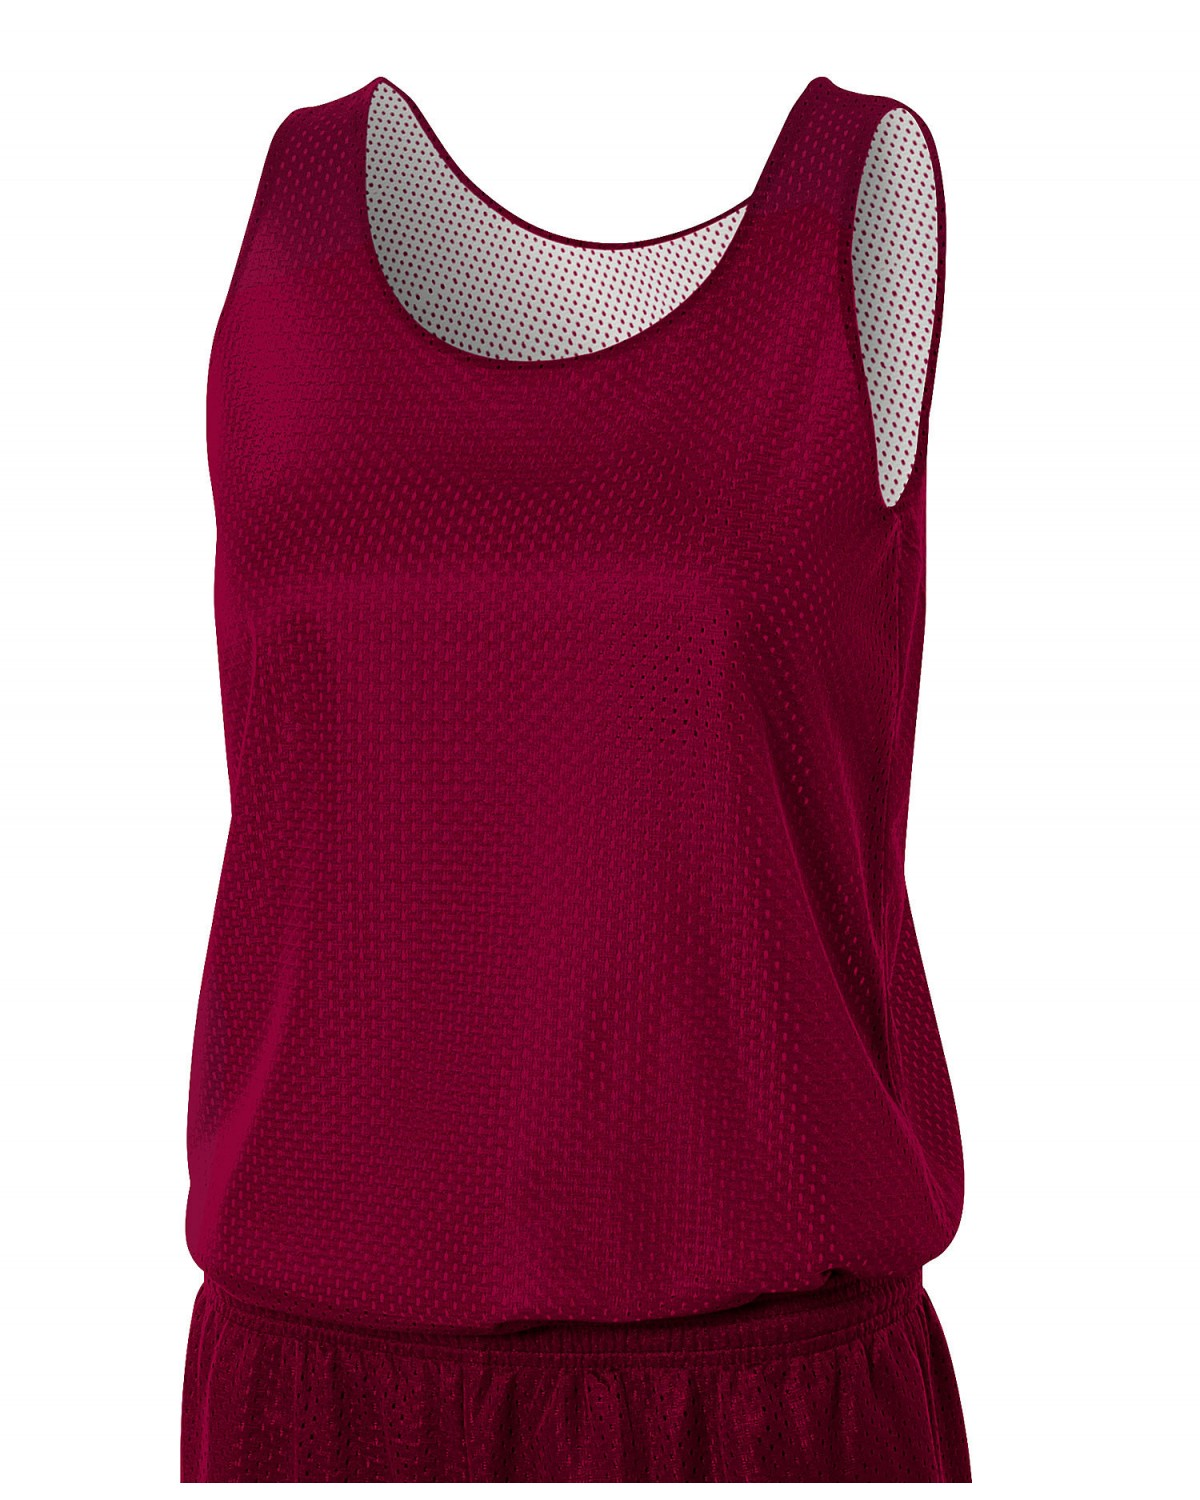 A4NW1000 A4 MAROON/WHITE